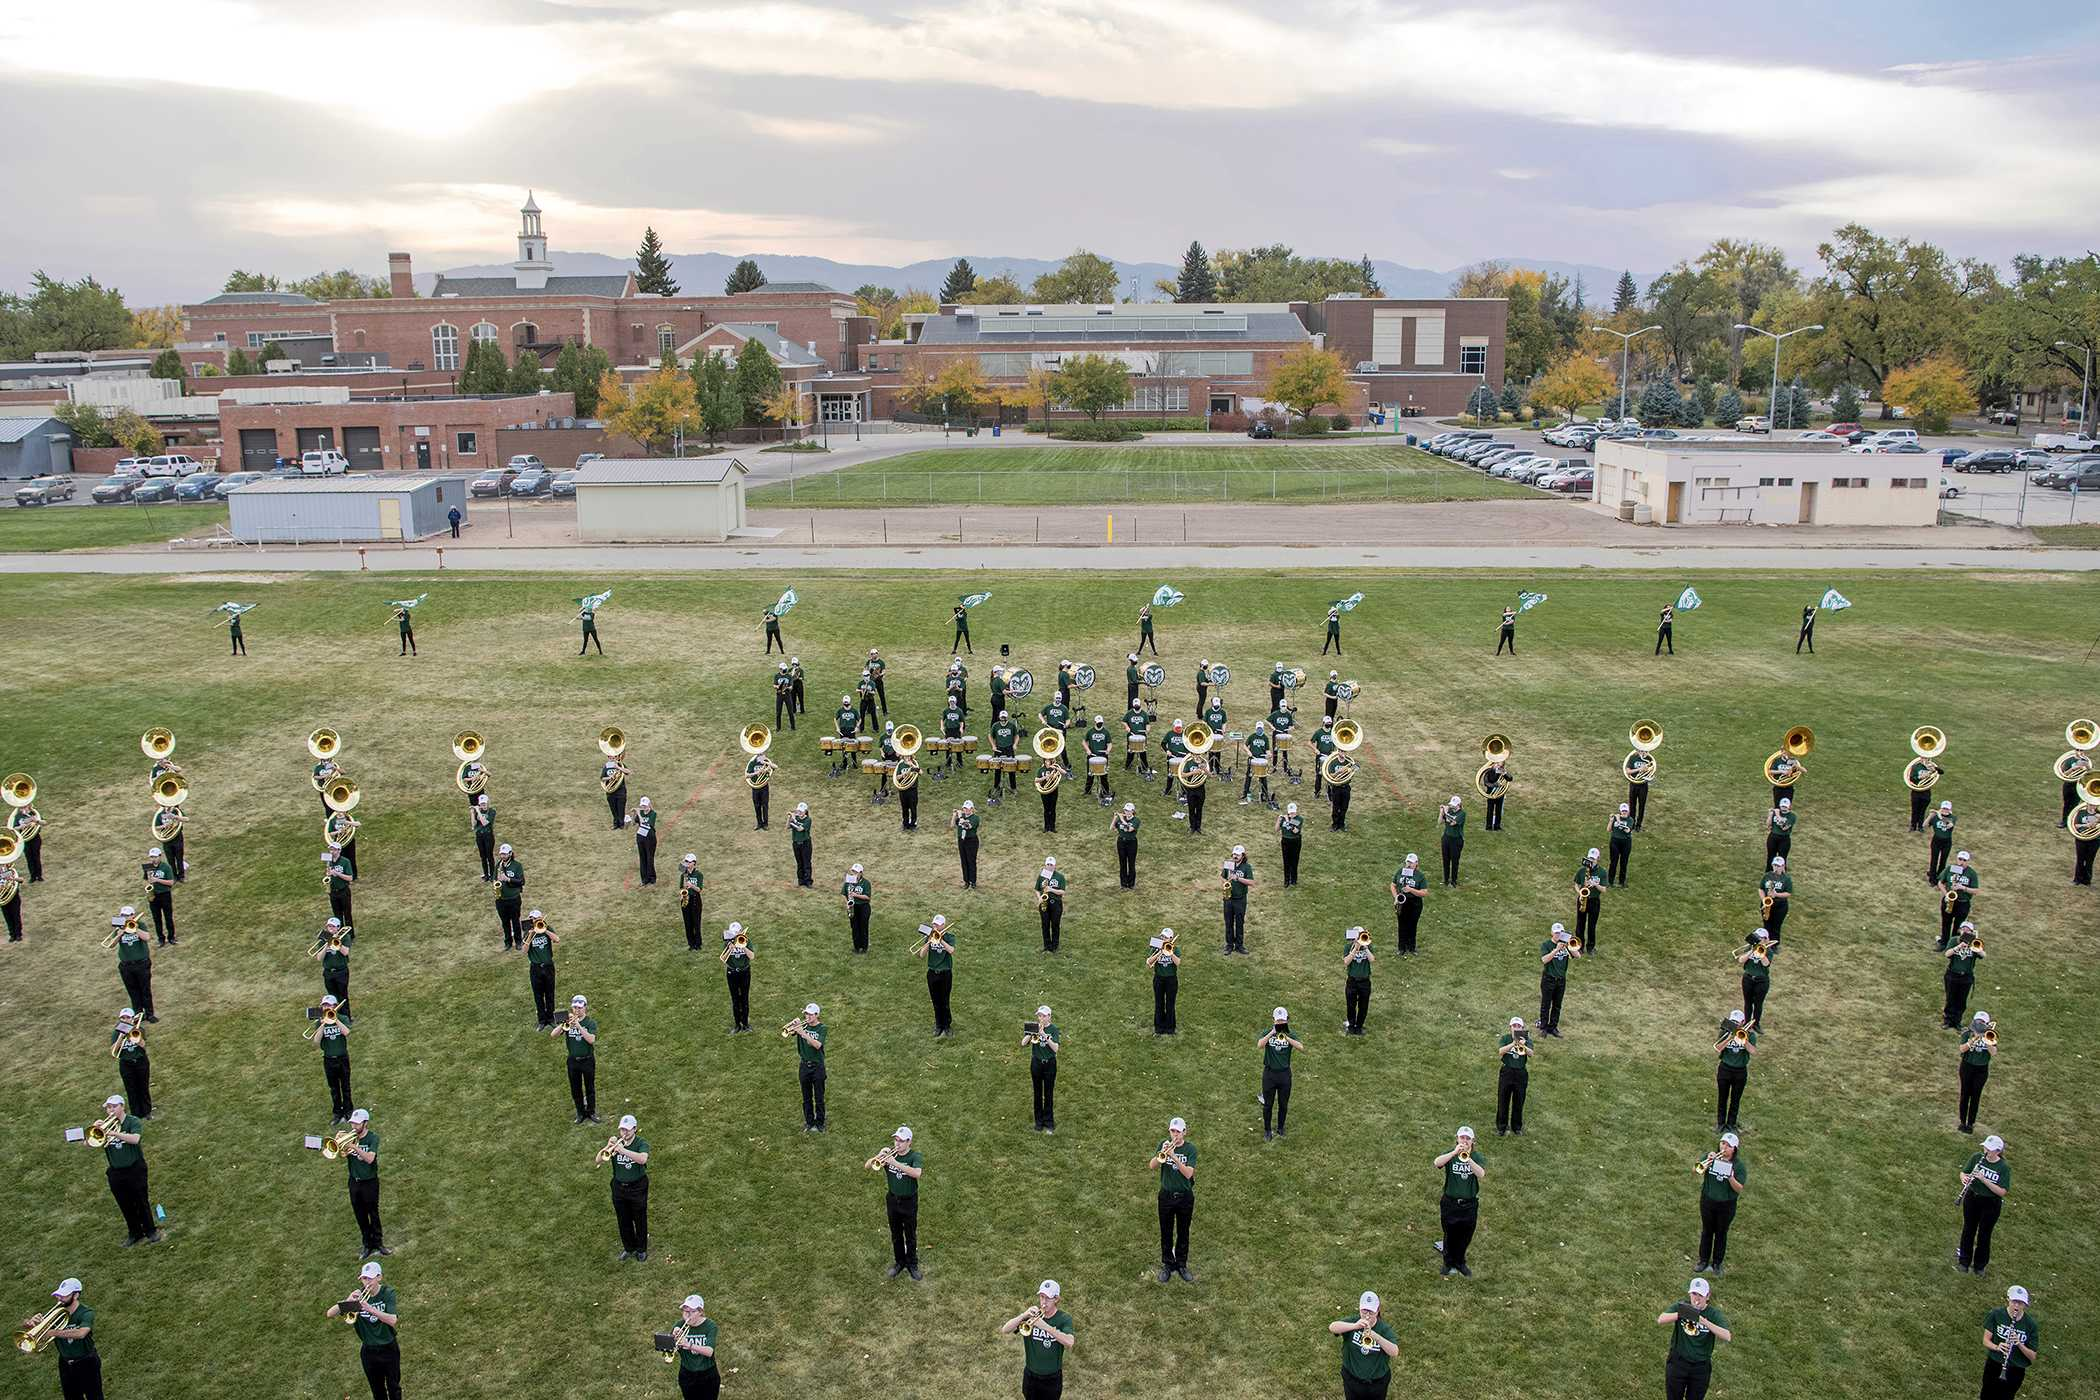 Bird's eye view of the CSU Marching Band during socially distanced rehearsal